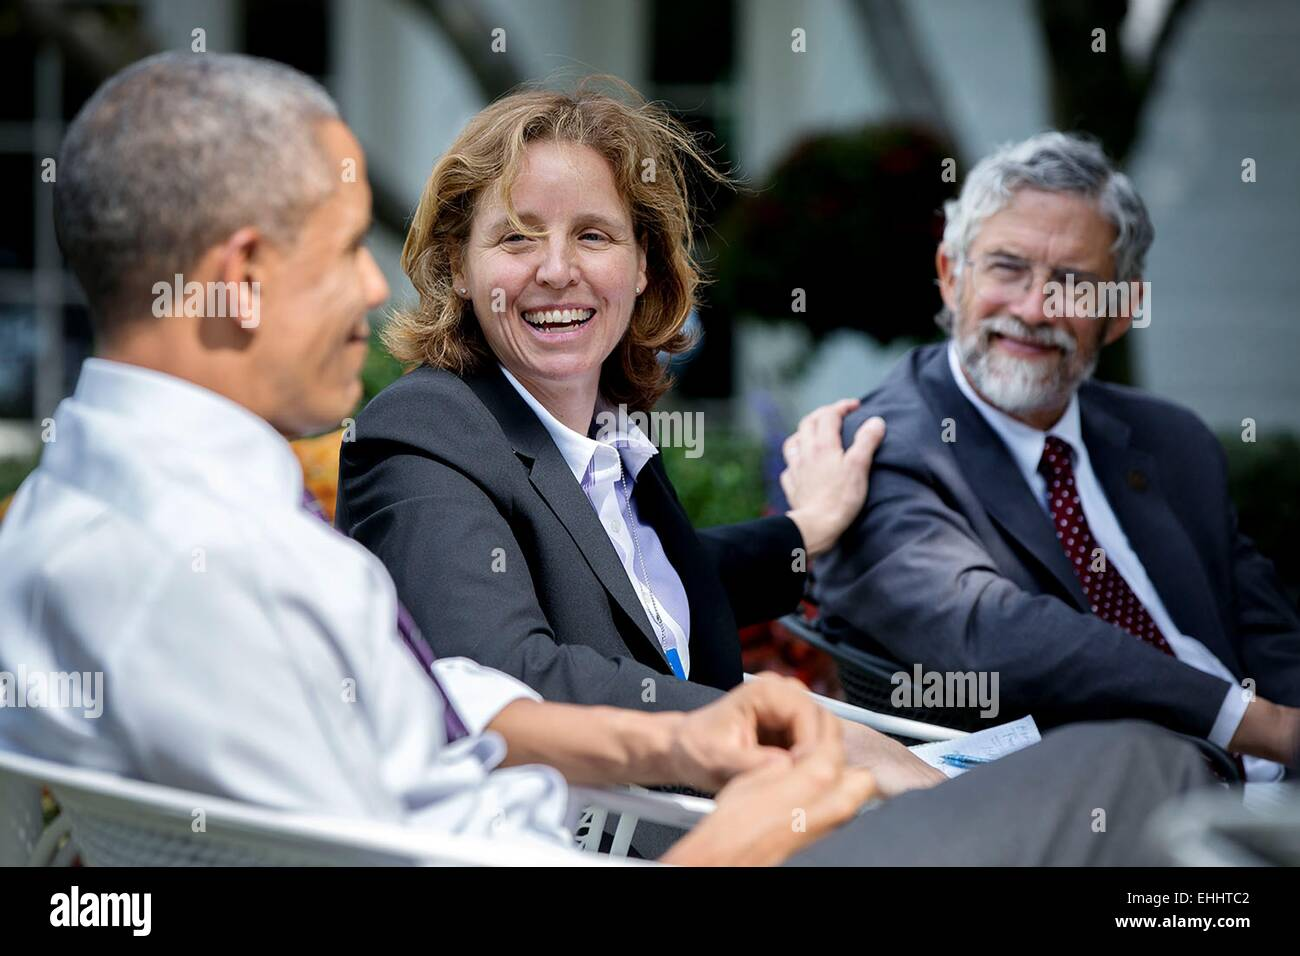 US President Barack Obama talks with Megan Smith, U.S. Chief Technology Officer, and Dr. John Holdren, Director - Stock Image